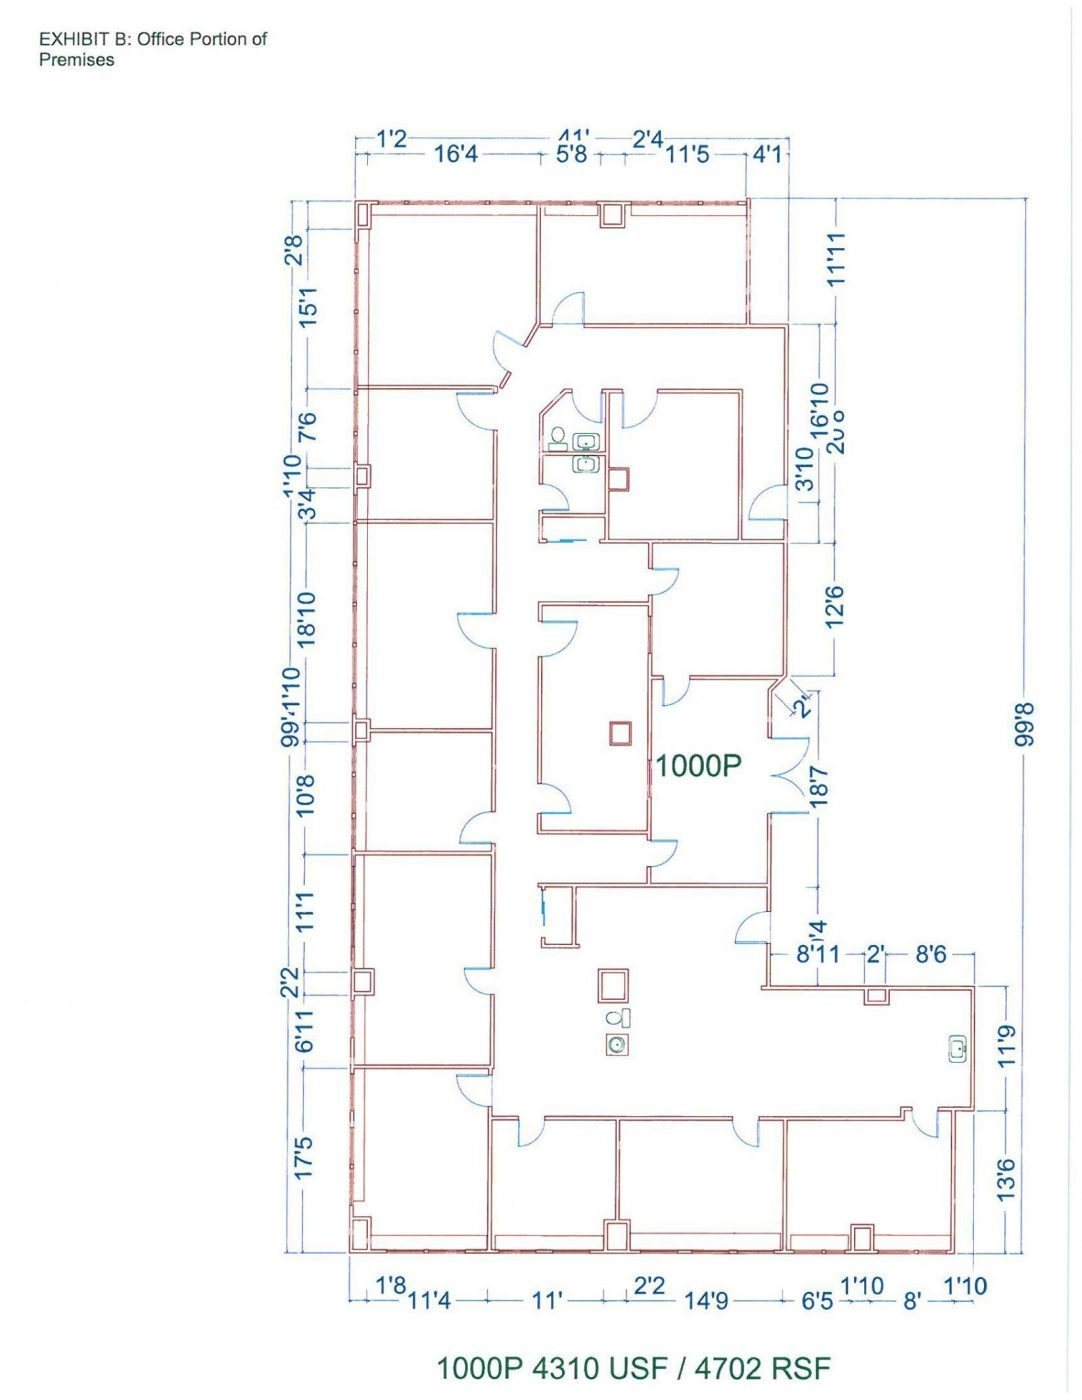 Floor Plan for unit 1000P at 20755 Greenfield Rd - 10th Floor Southfield, MI 48075